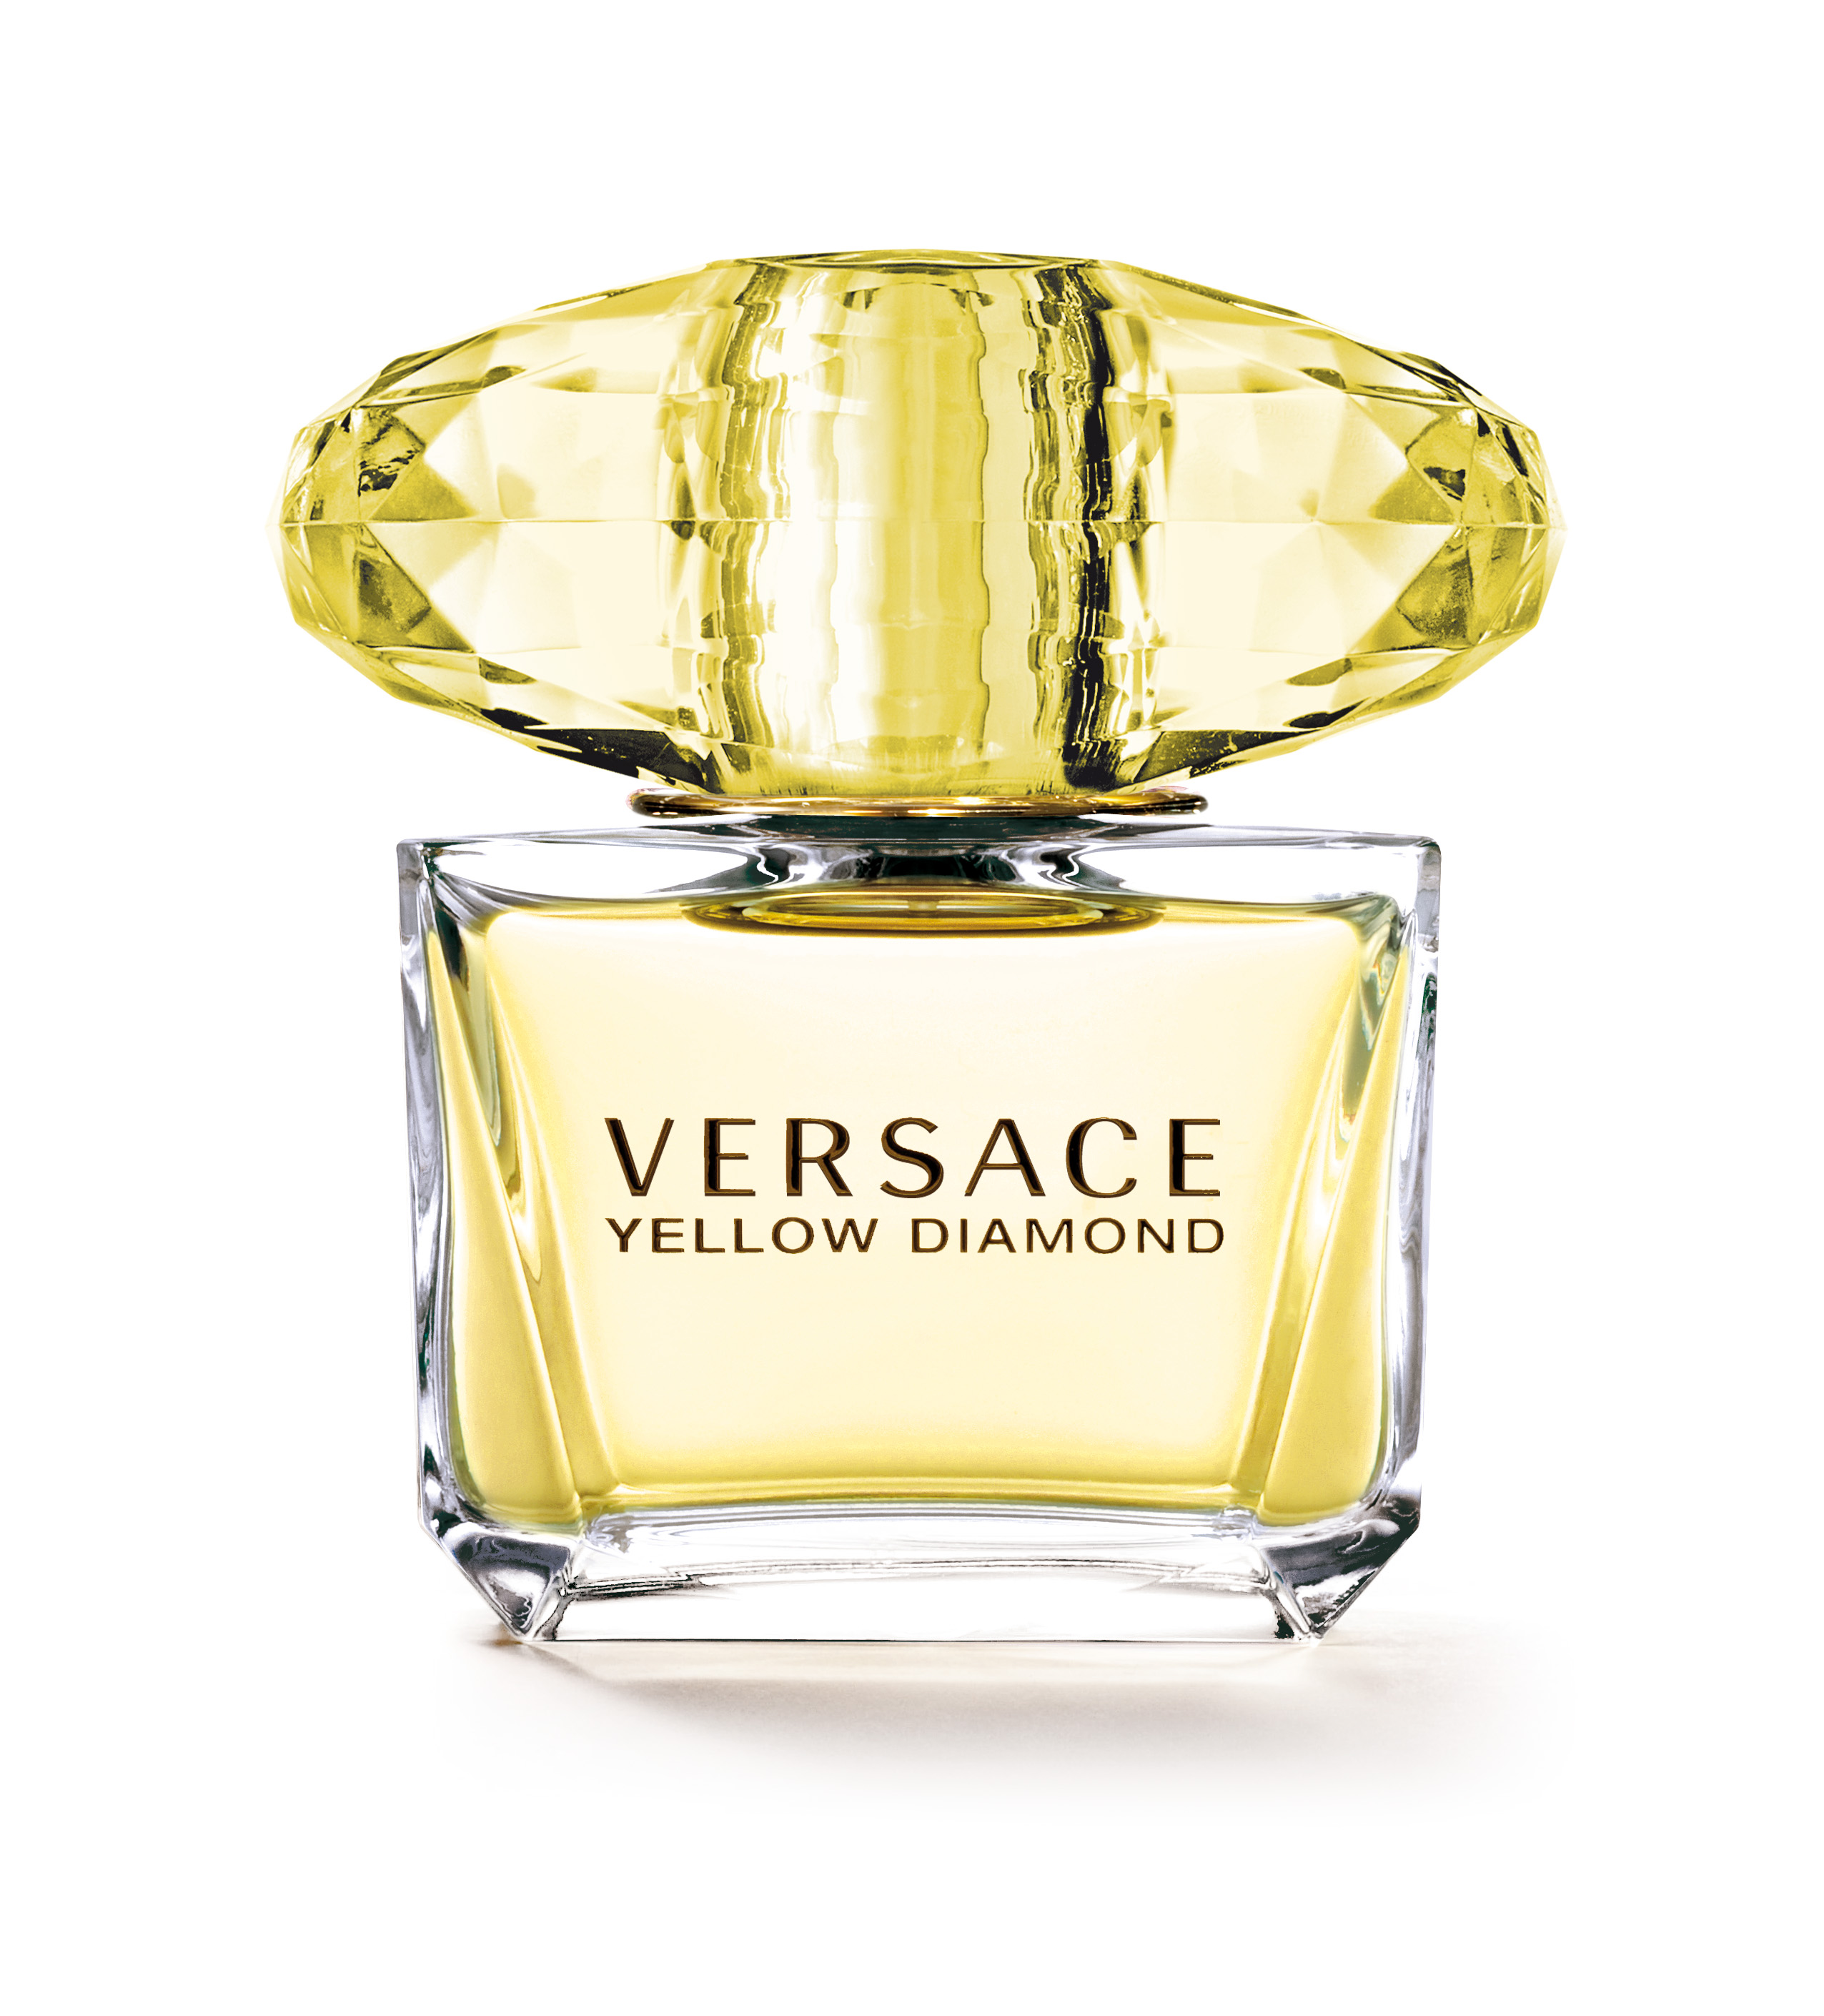 Versace Yellow Diamond Eau de Toilette for Woman 30 ml